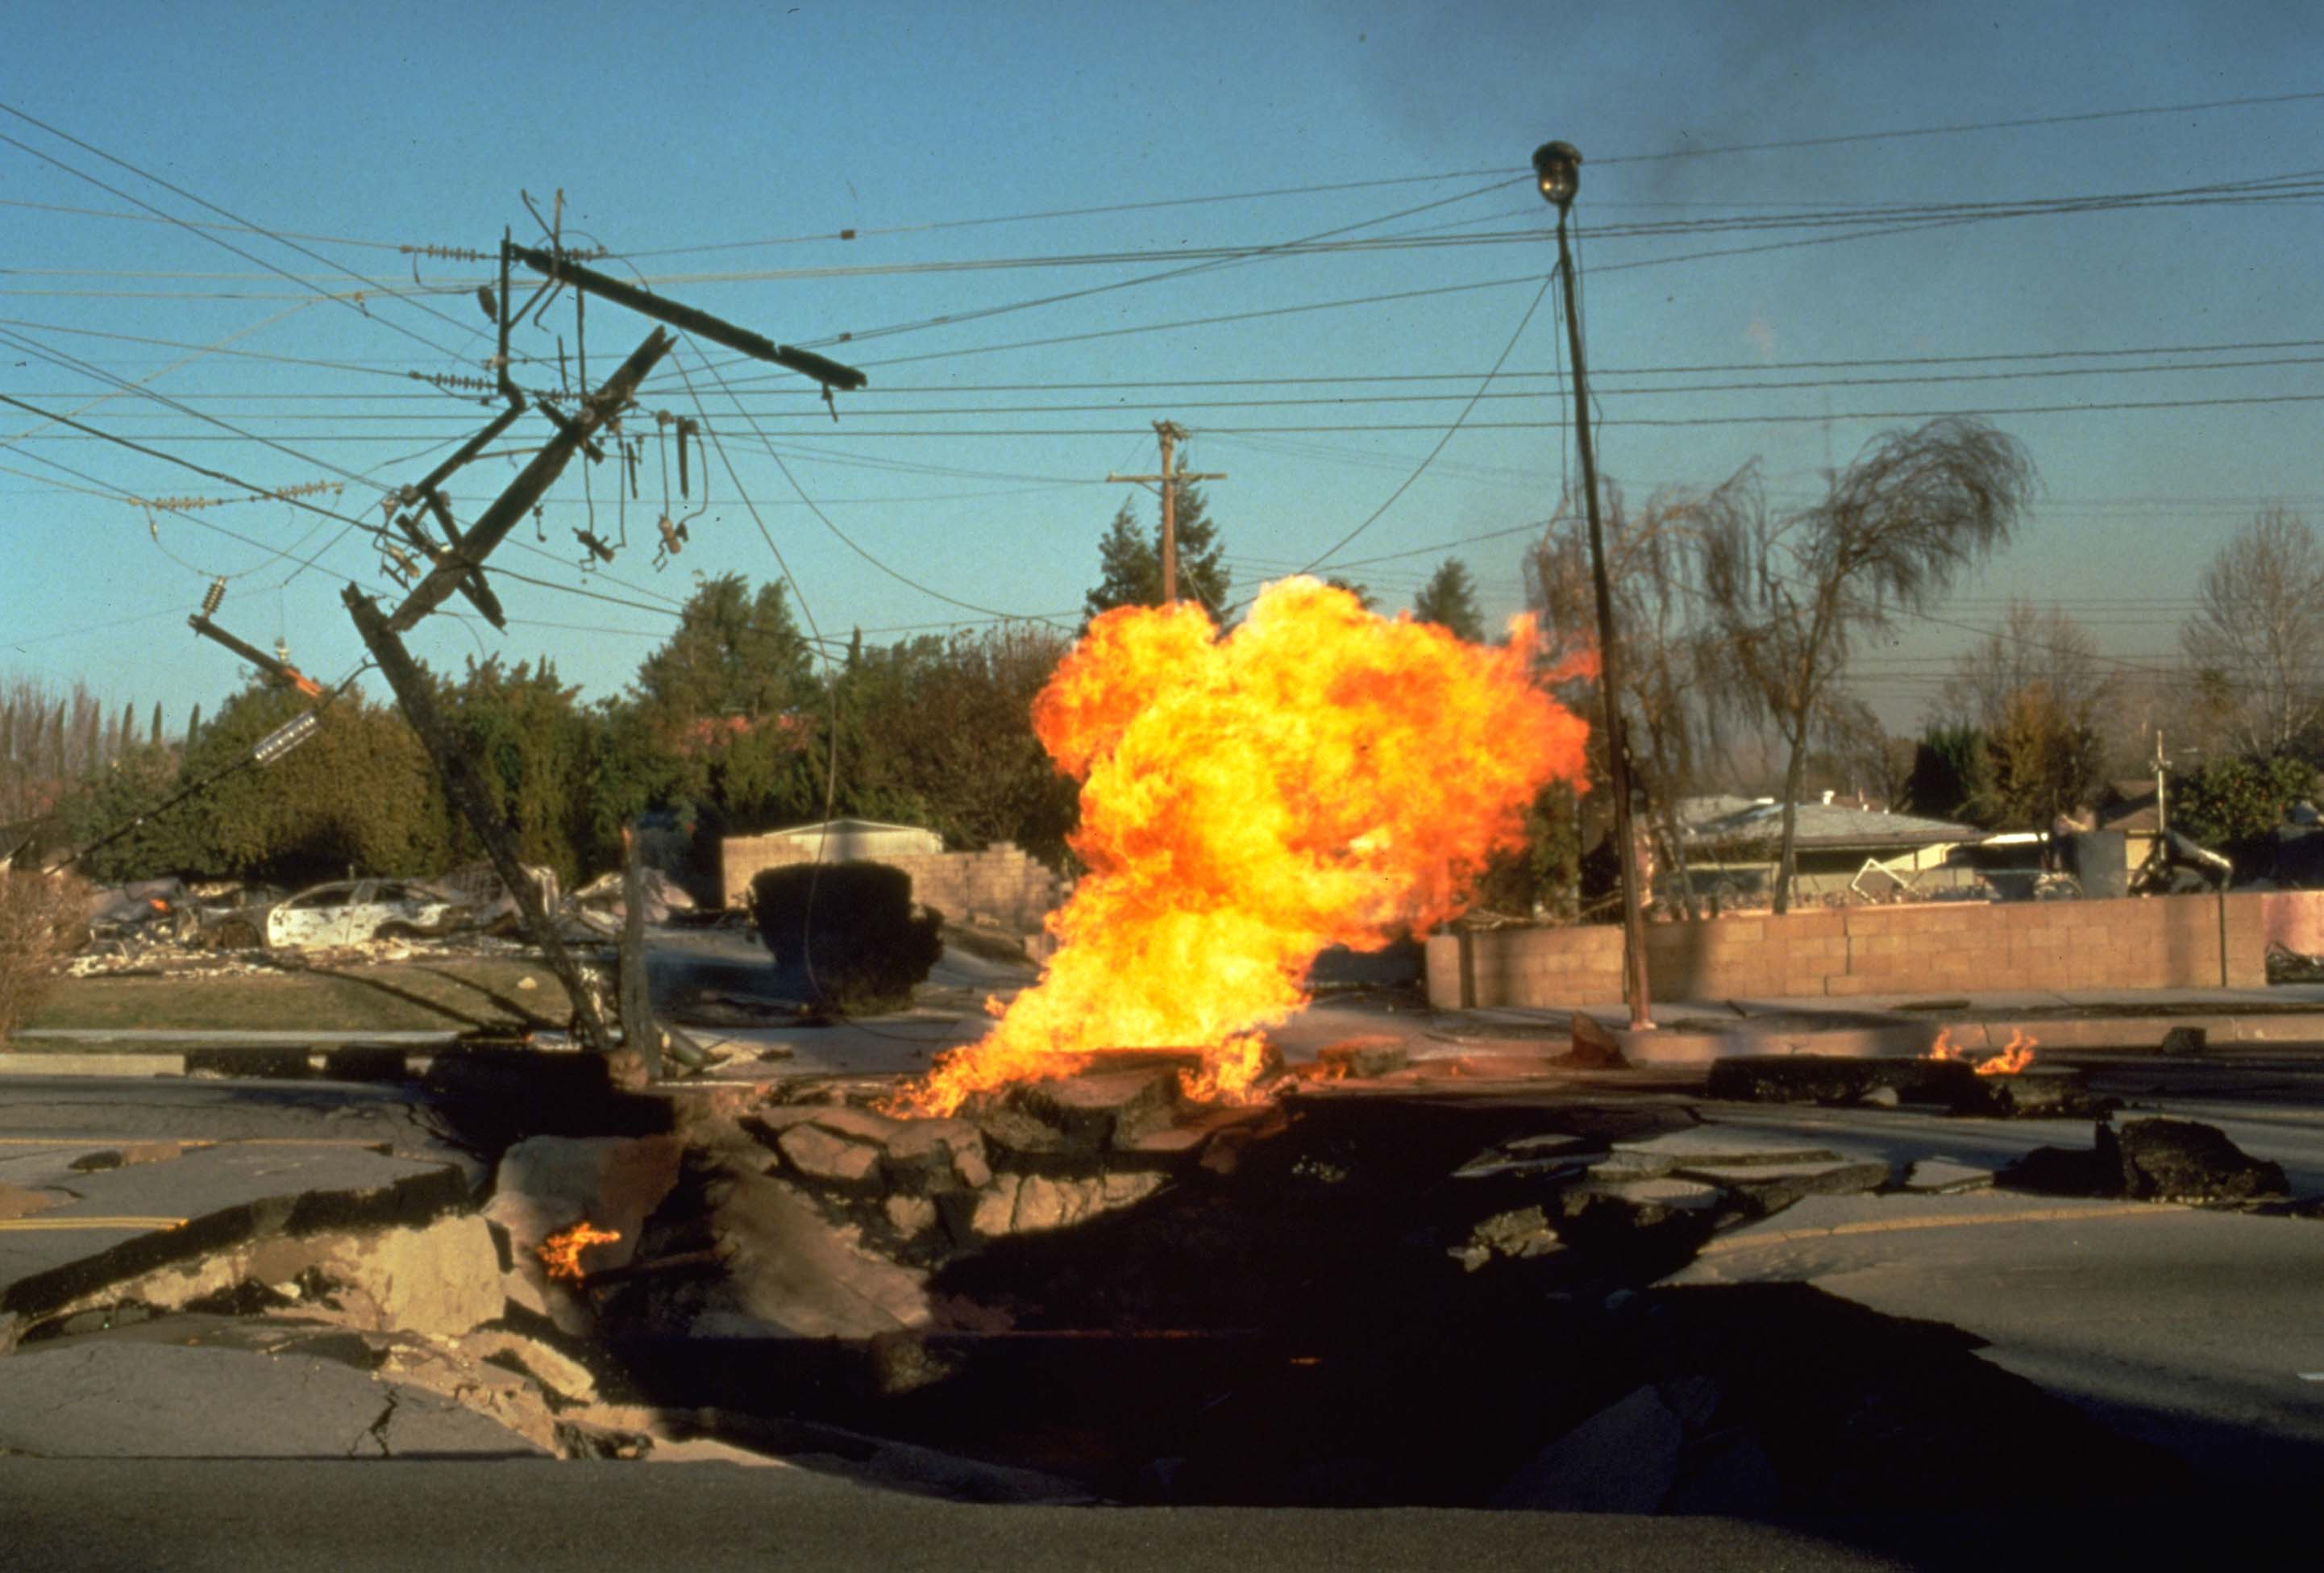 Fire fueled by a ruptured gas line burns after the Jan. 17, 1994 Northridge earthquake.